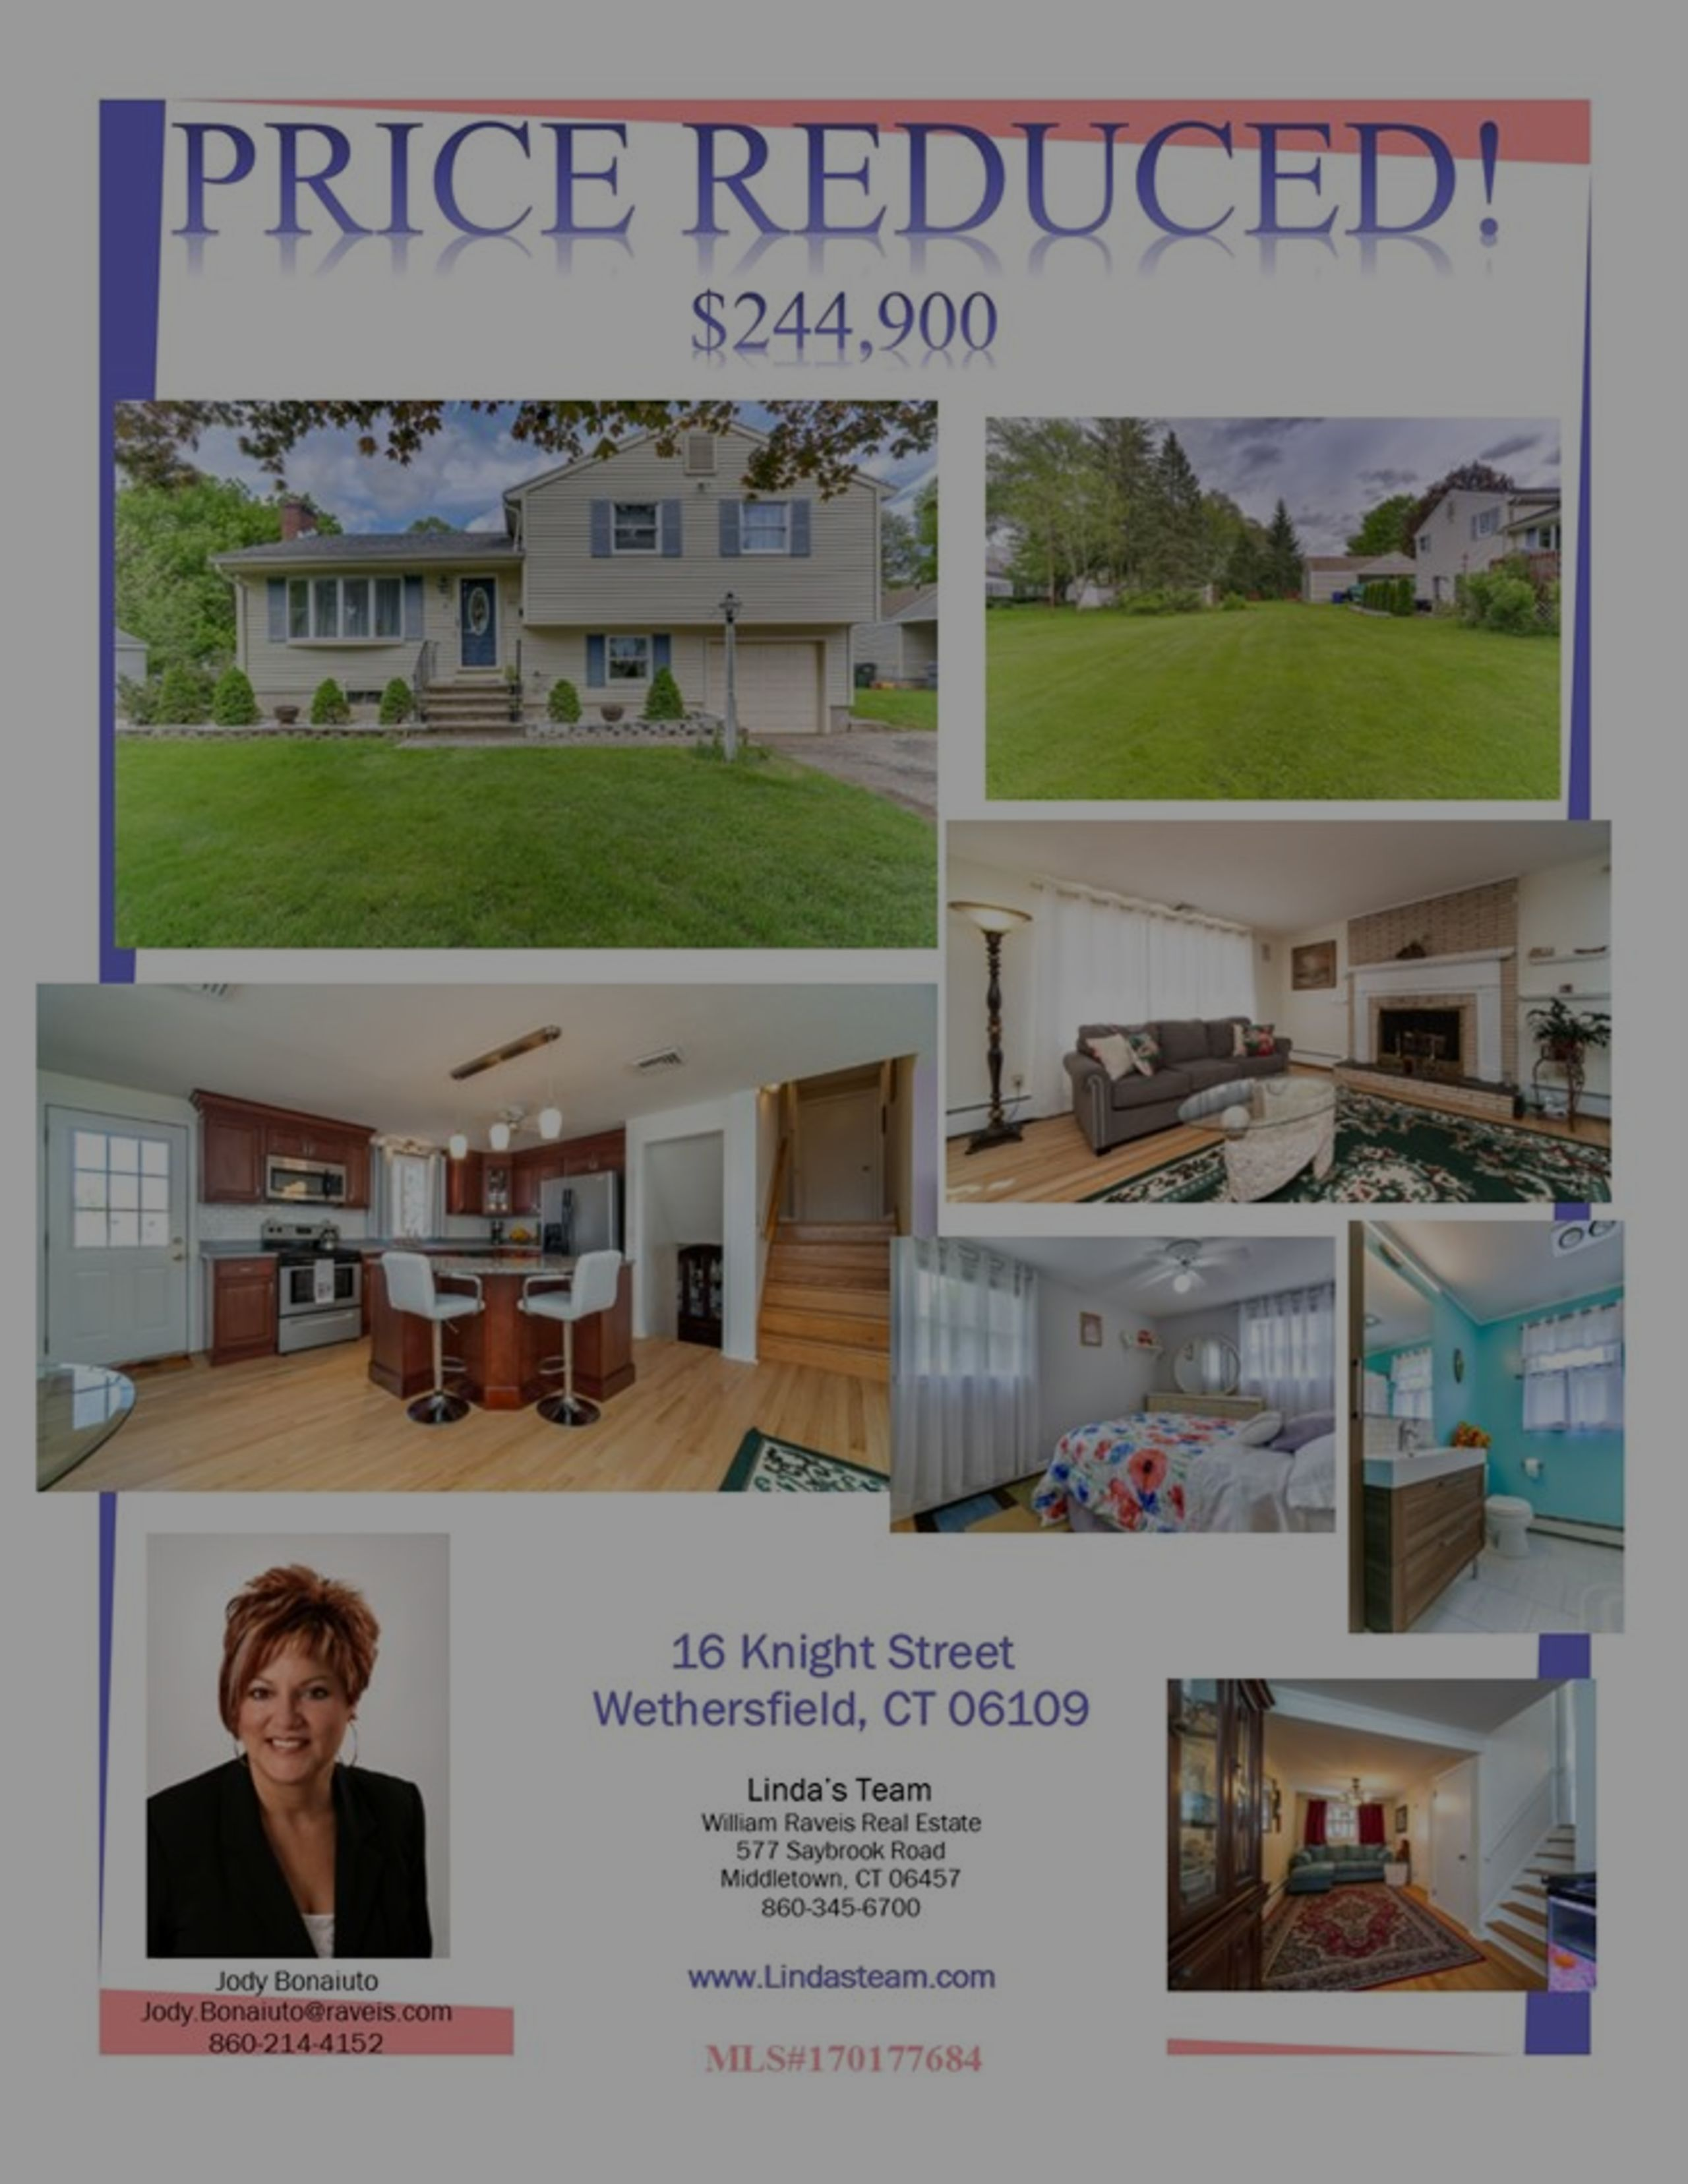 *PRICE REDUCED* 16 Knight Street, Wethersfield, CT